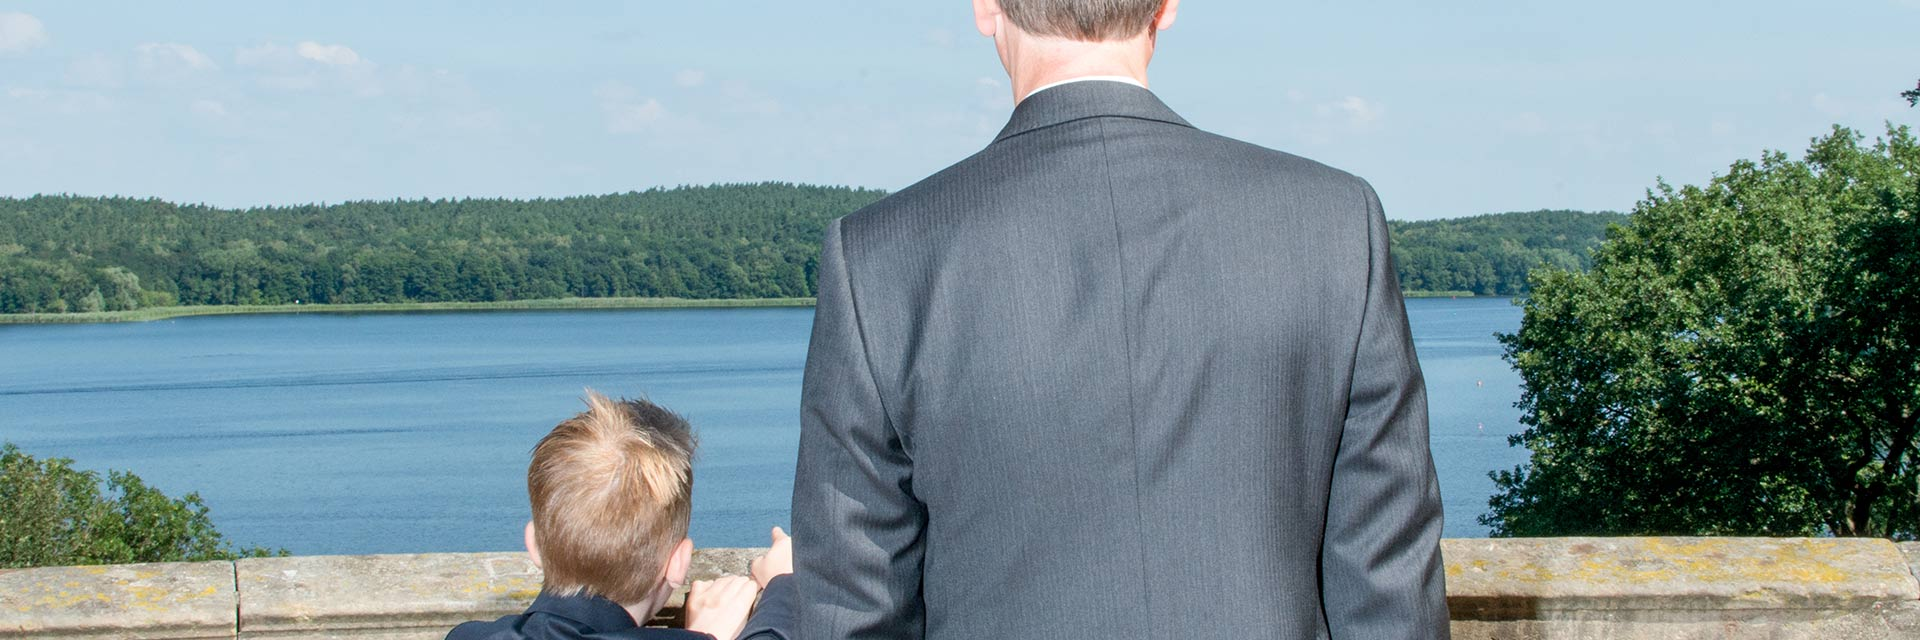 A man and his son, both in suits, look out over a body of water.